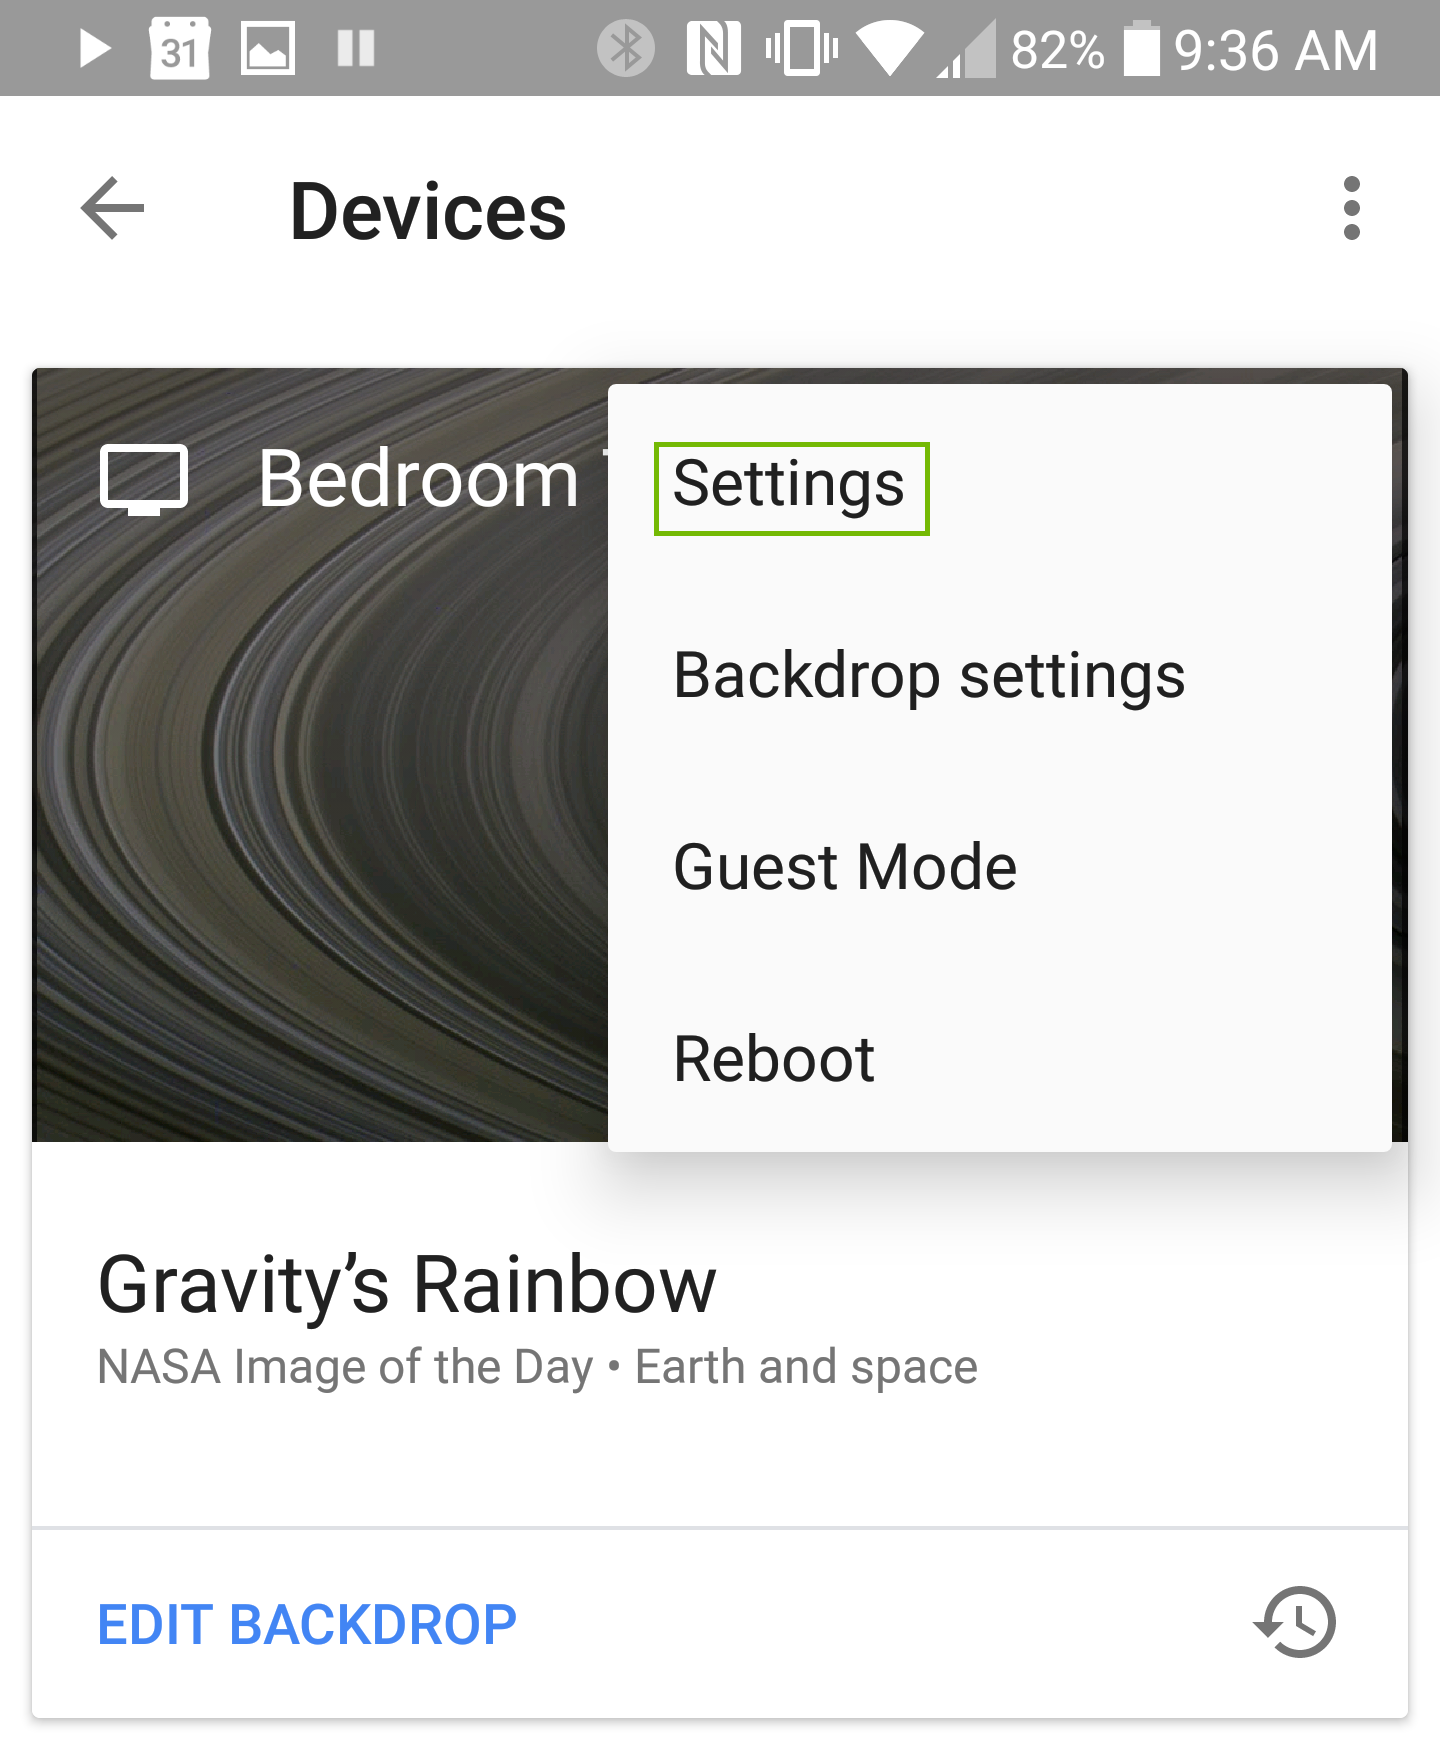 Device menu with Settings highlighted.